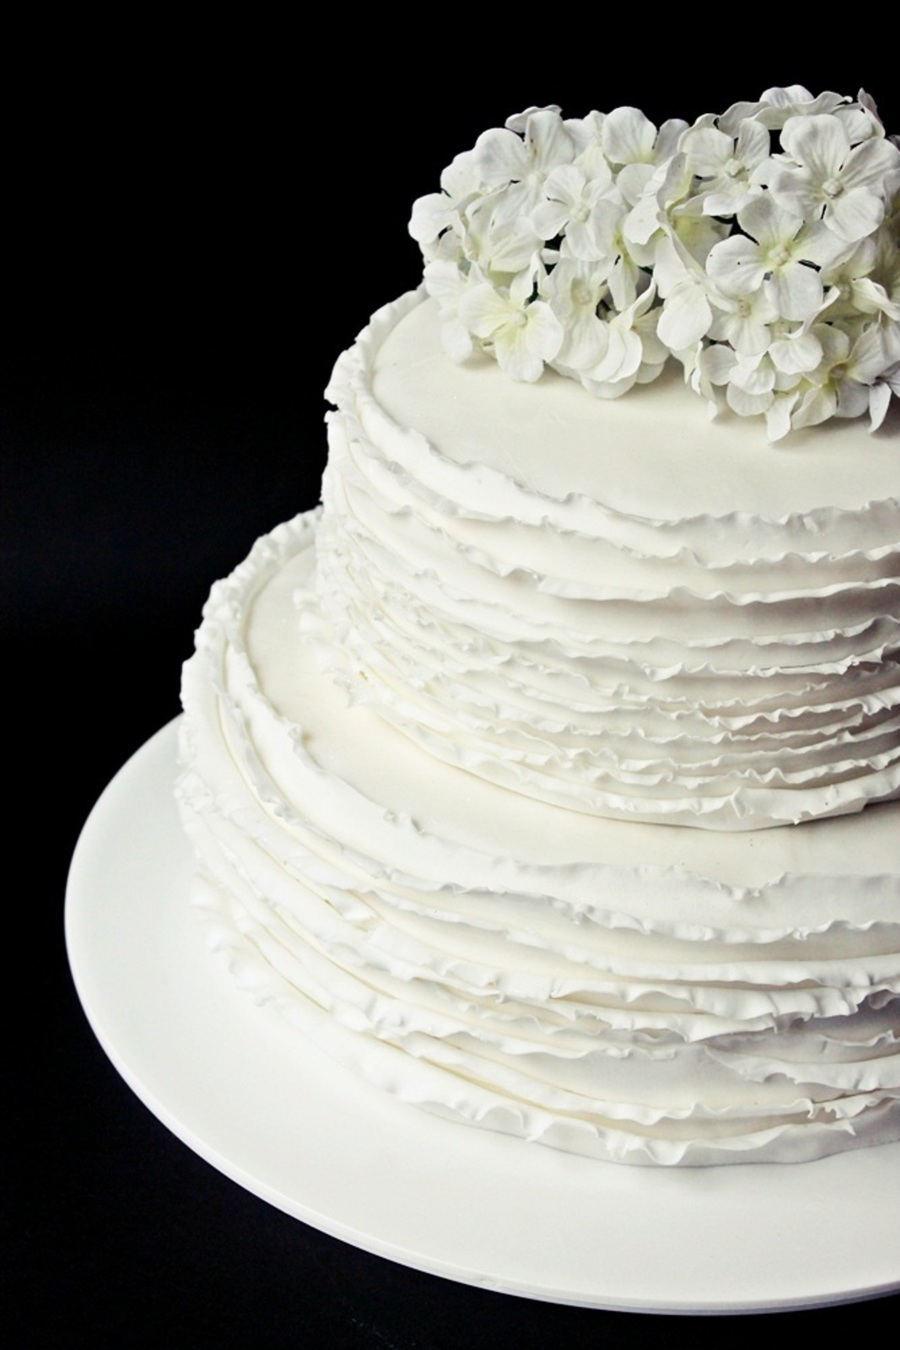 Fondant White Two Tier Cake With Flowers